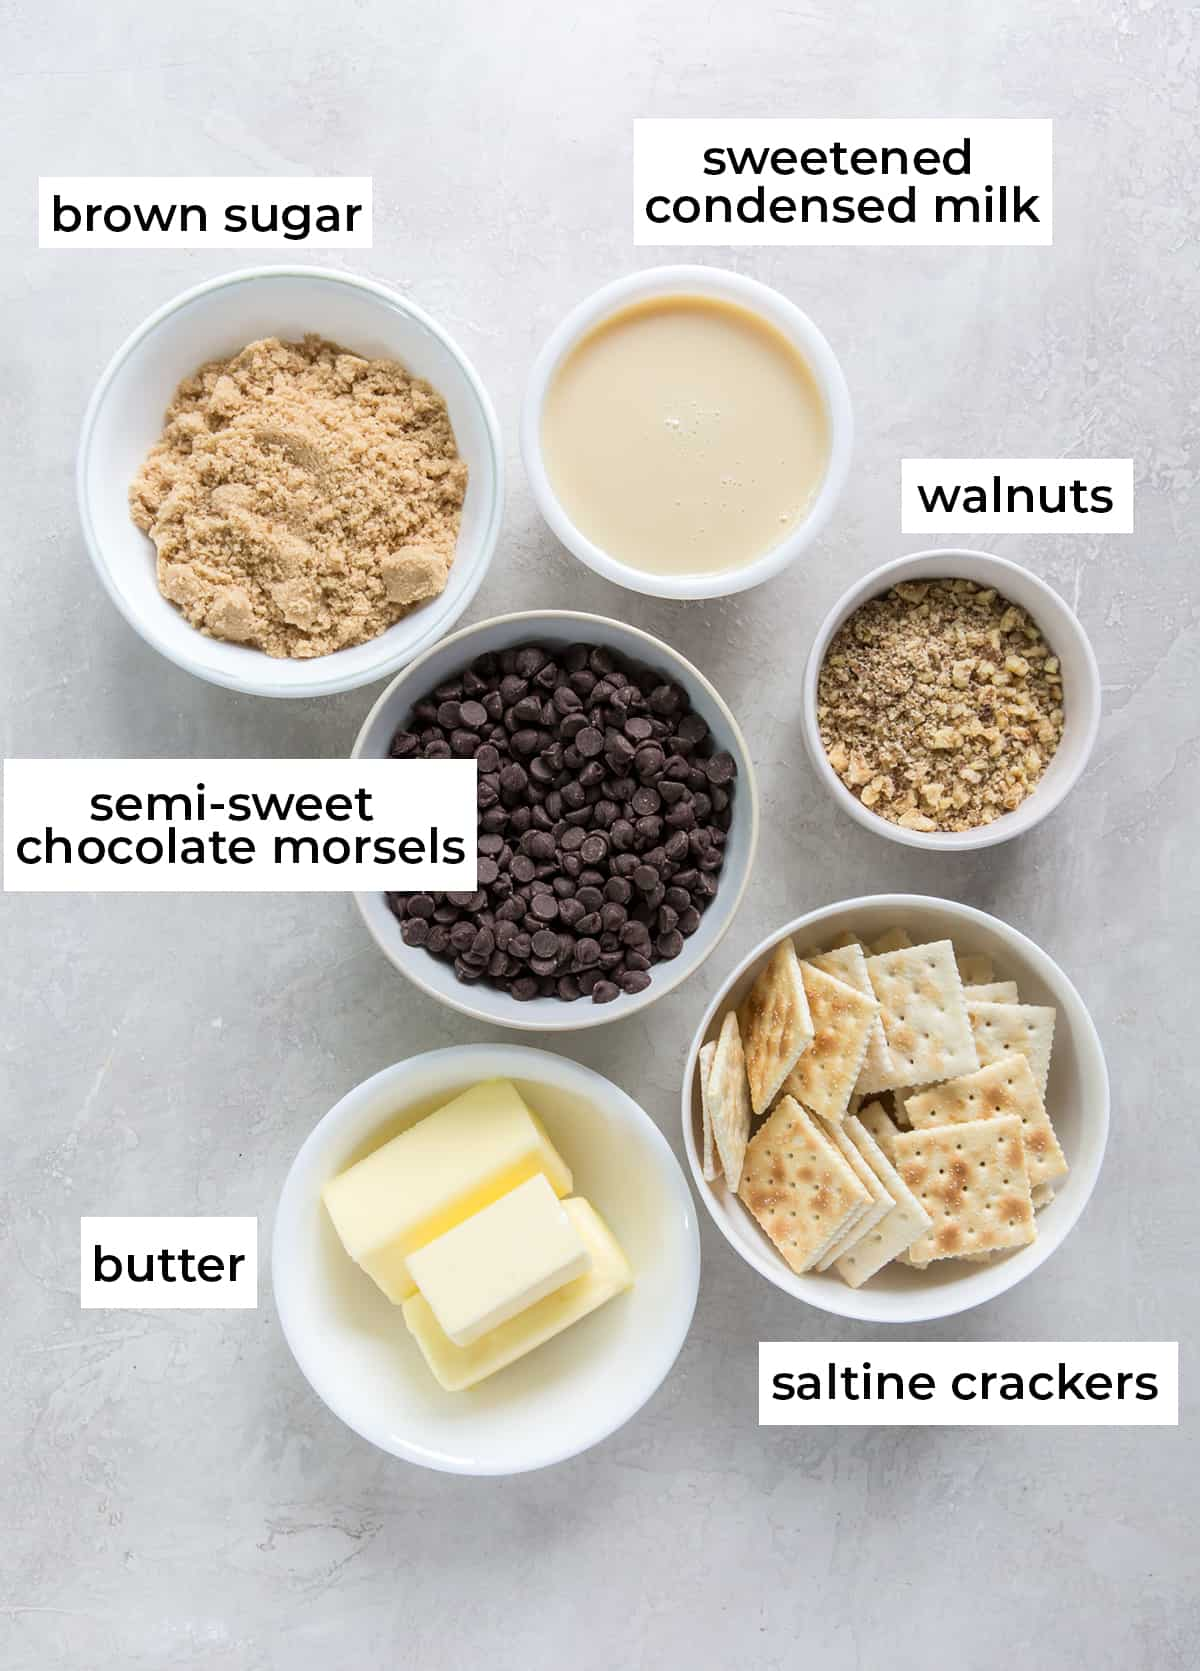 The ingredients needed to make Easy Toffee Candy with text overlay.